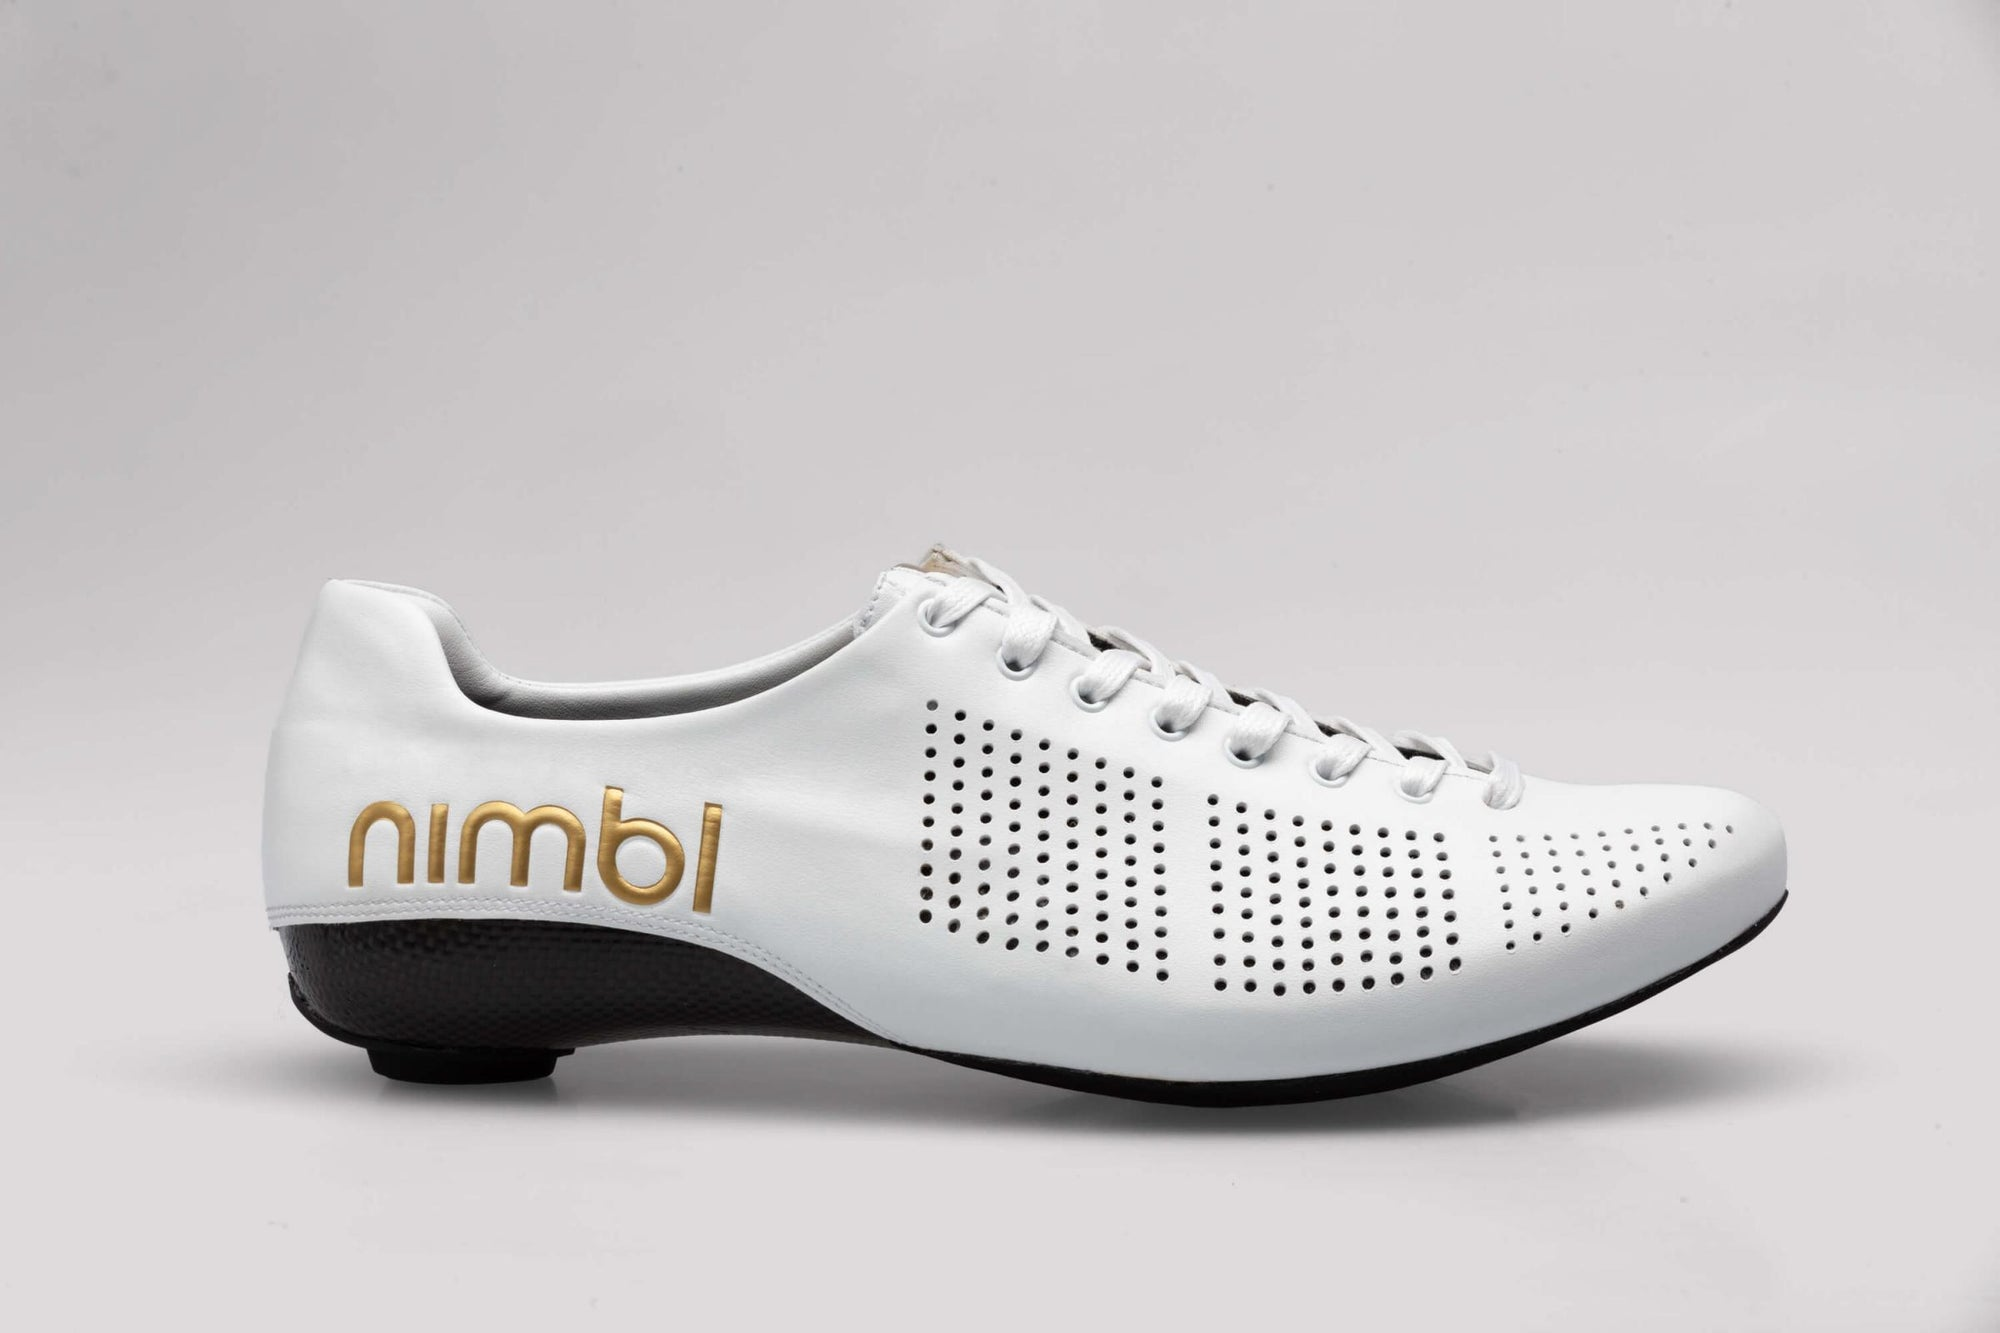 Nimbl AIR Premium Cycling Road Shoes - Gold Edition | CYCLISM